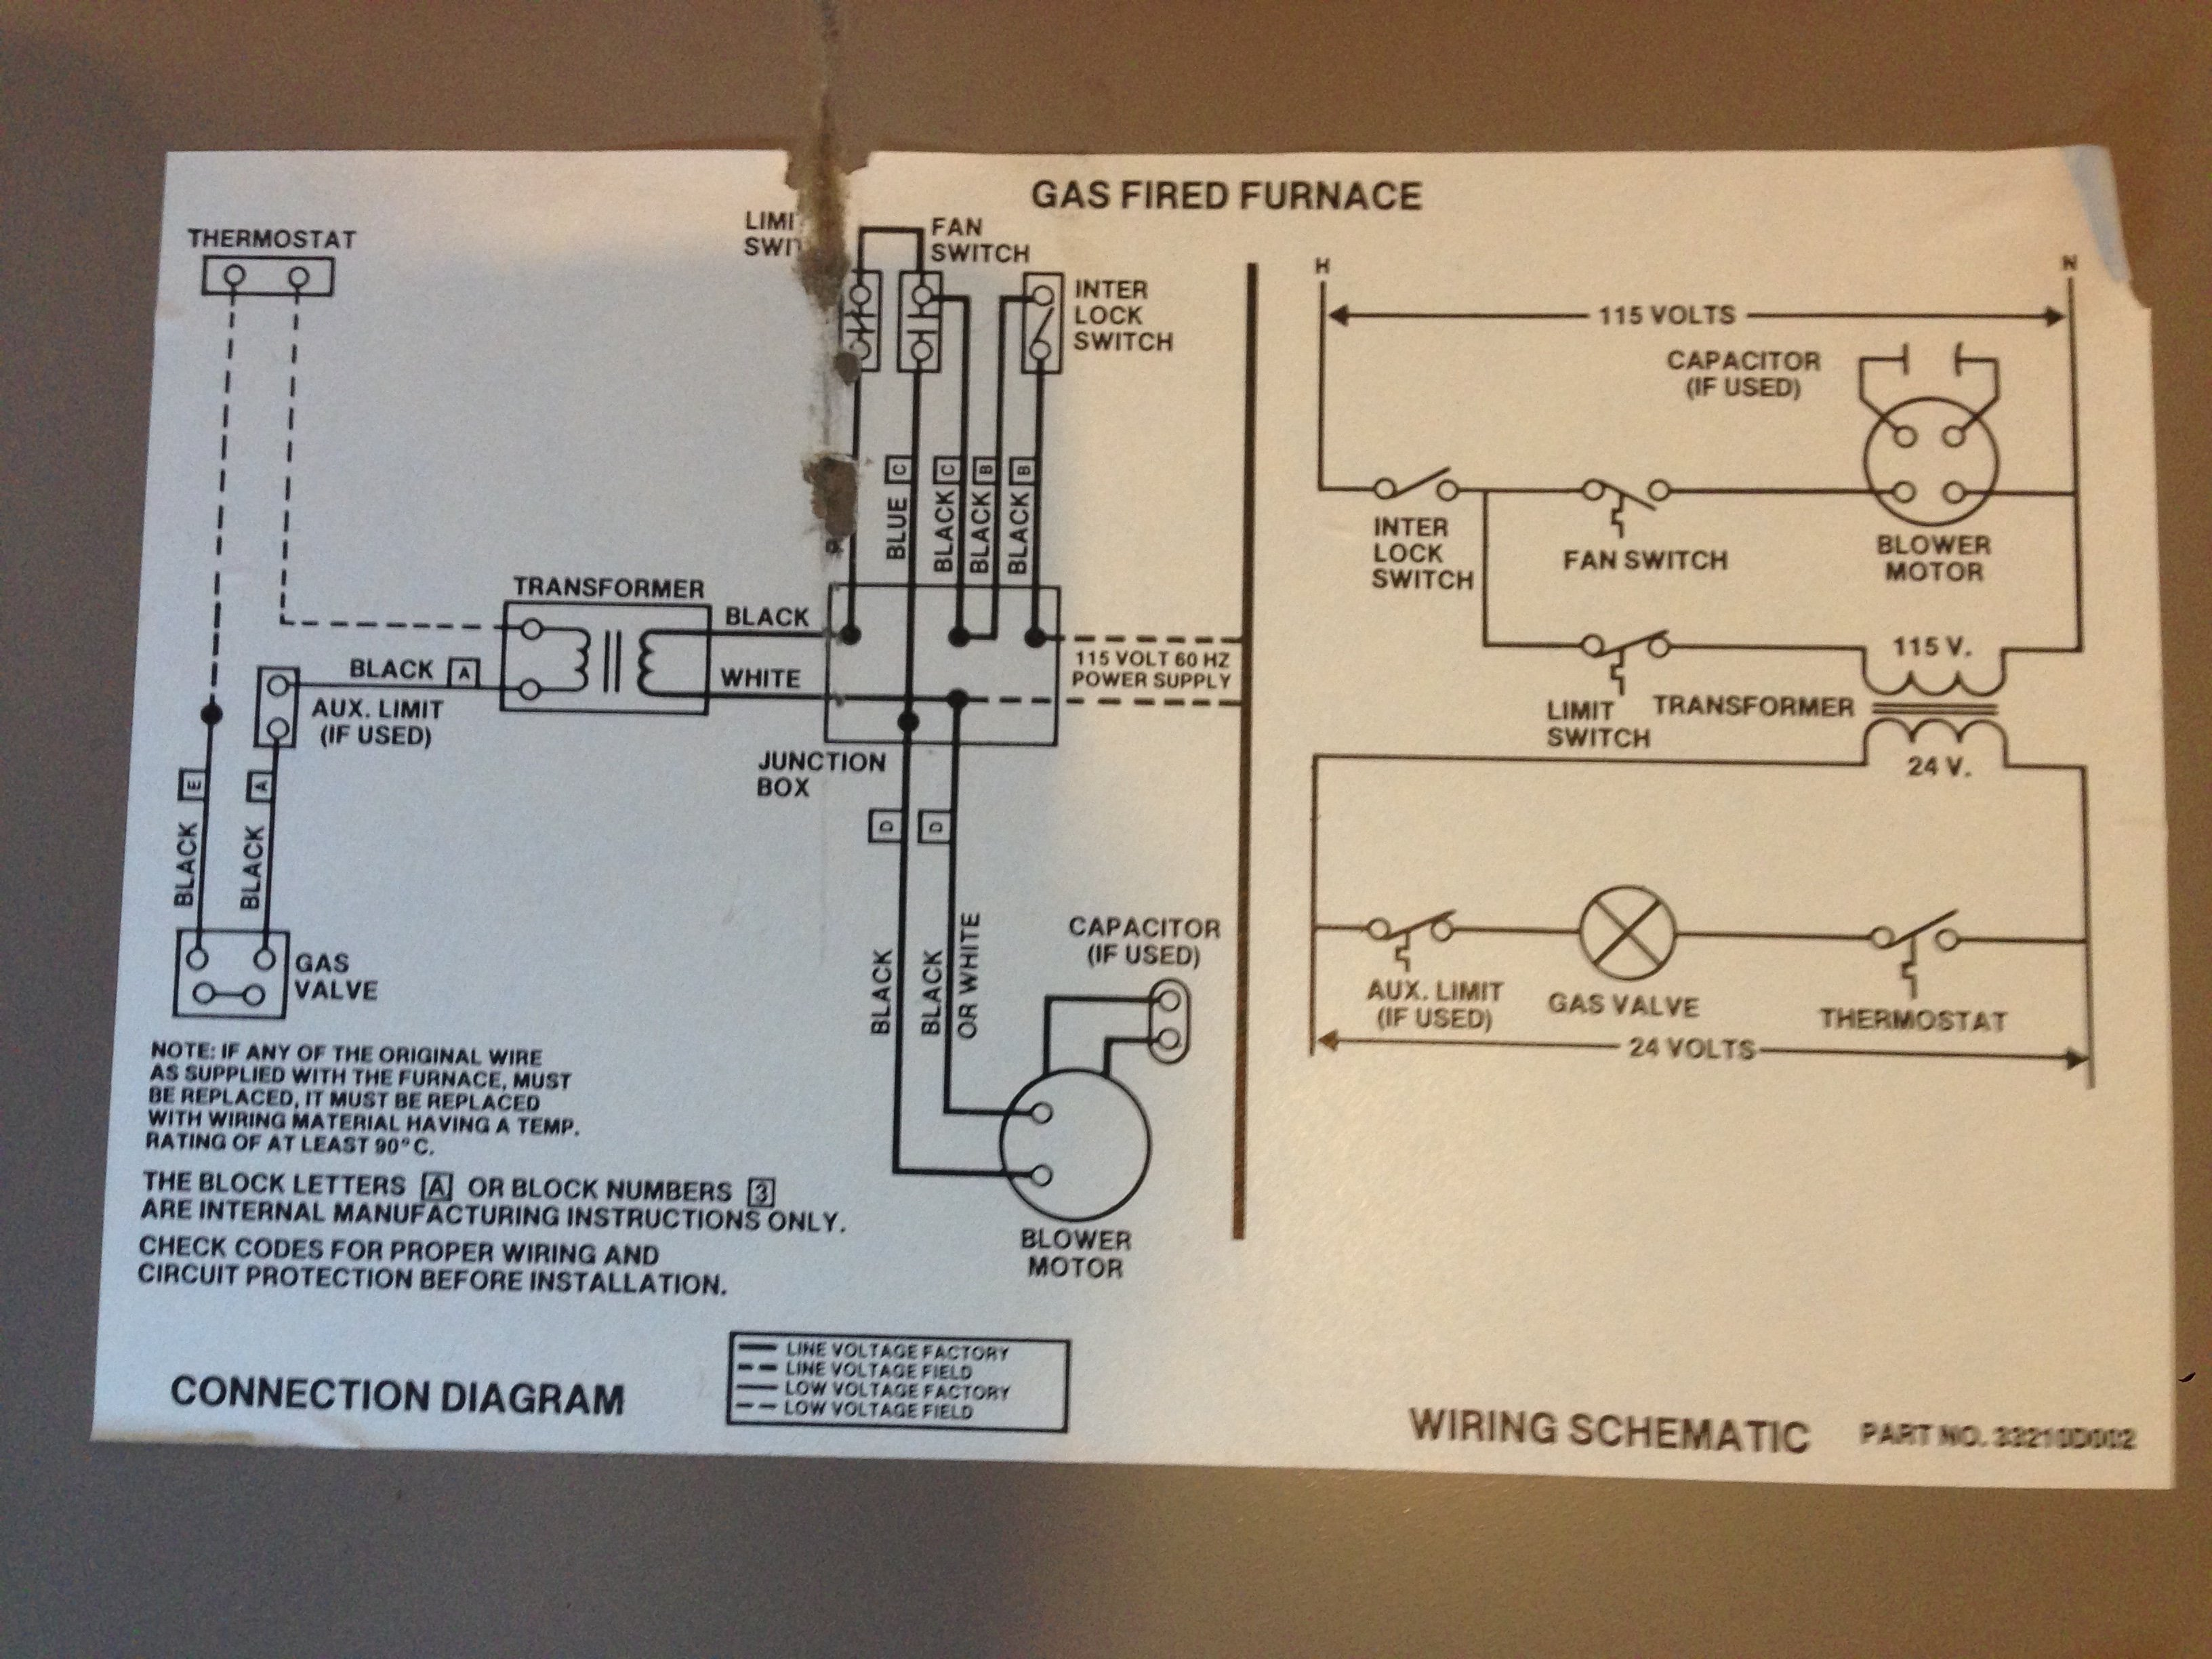 Gas Furnace Wiring Diagram from f01.justanswer.com